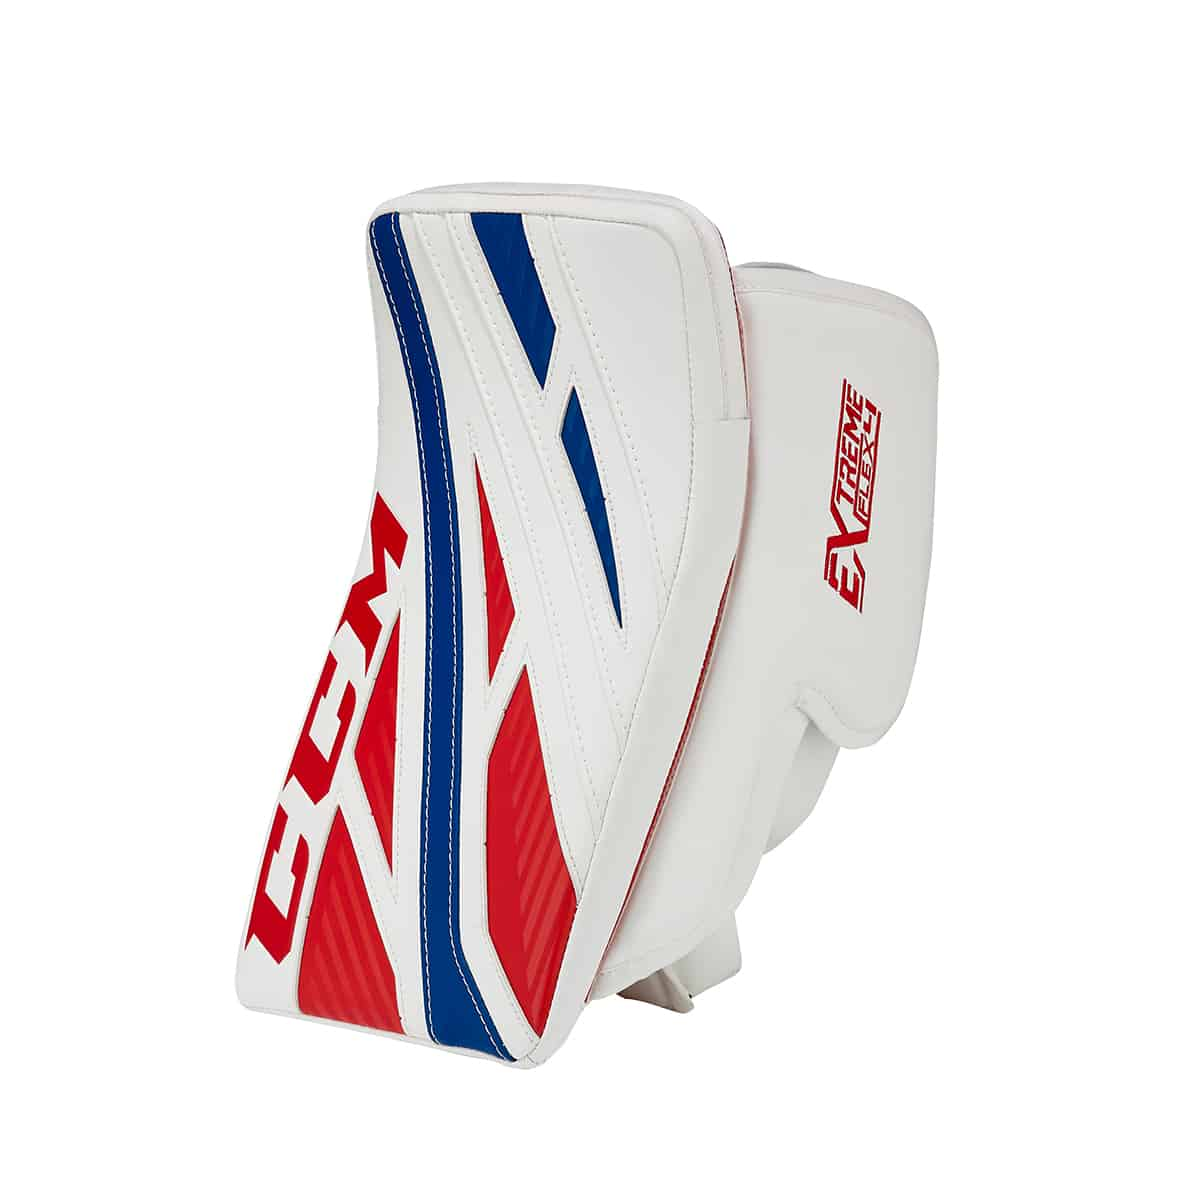 3de983edf79 CCM Extreme Flex 4 Pro Senior Goalie Blocker